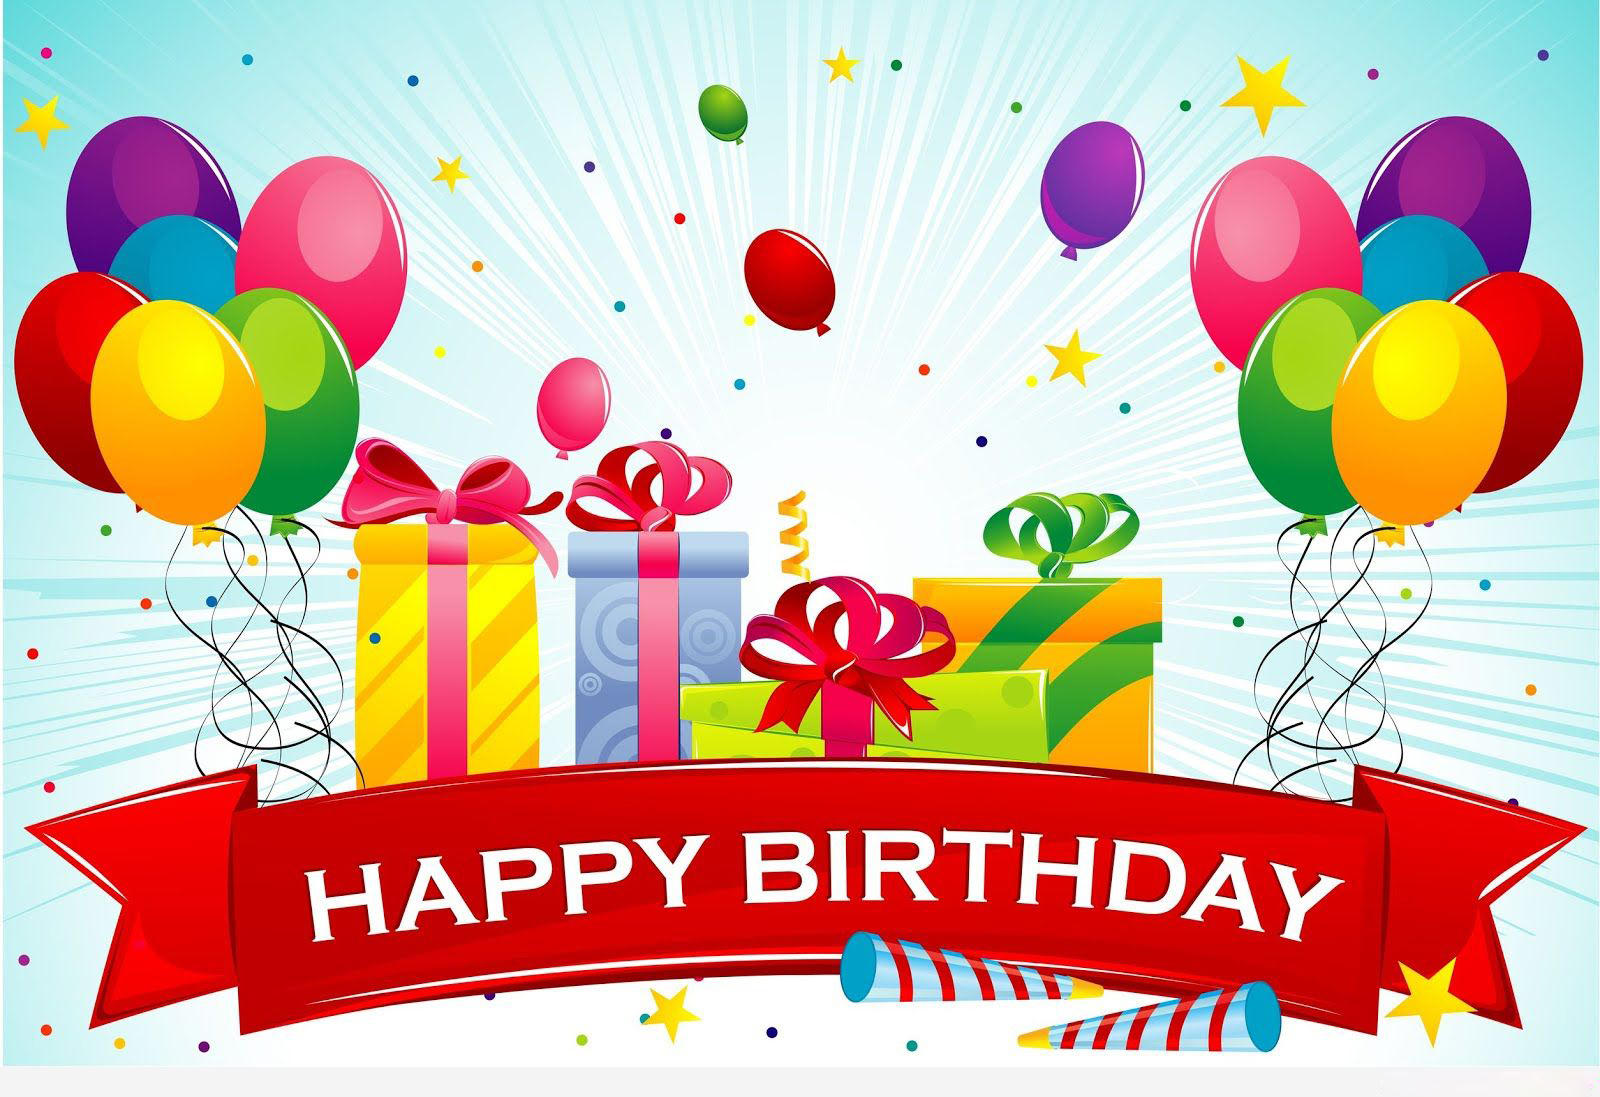 kids birthday wallpaper ; Free-and-Elegant-Birthday-Wallpapers-to-Wish-Loved-Ones-on-their-Special-Day